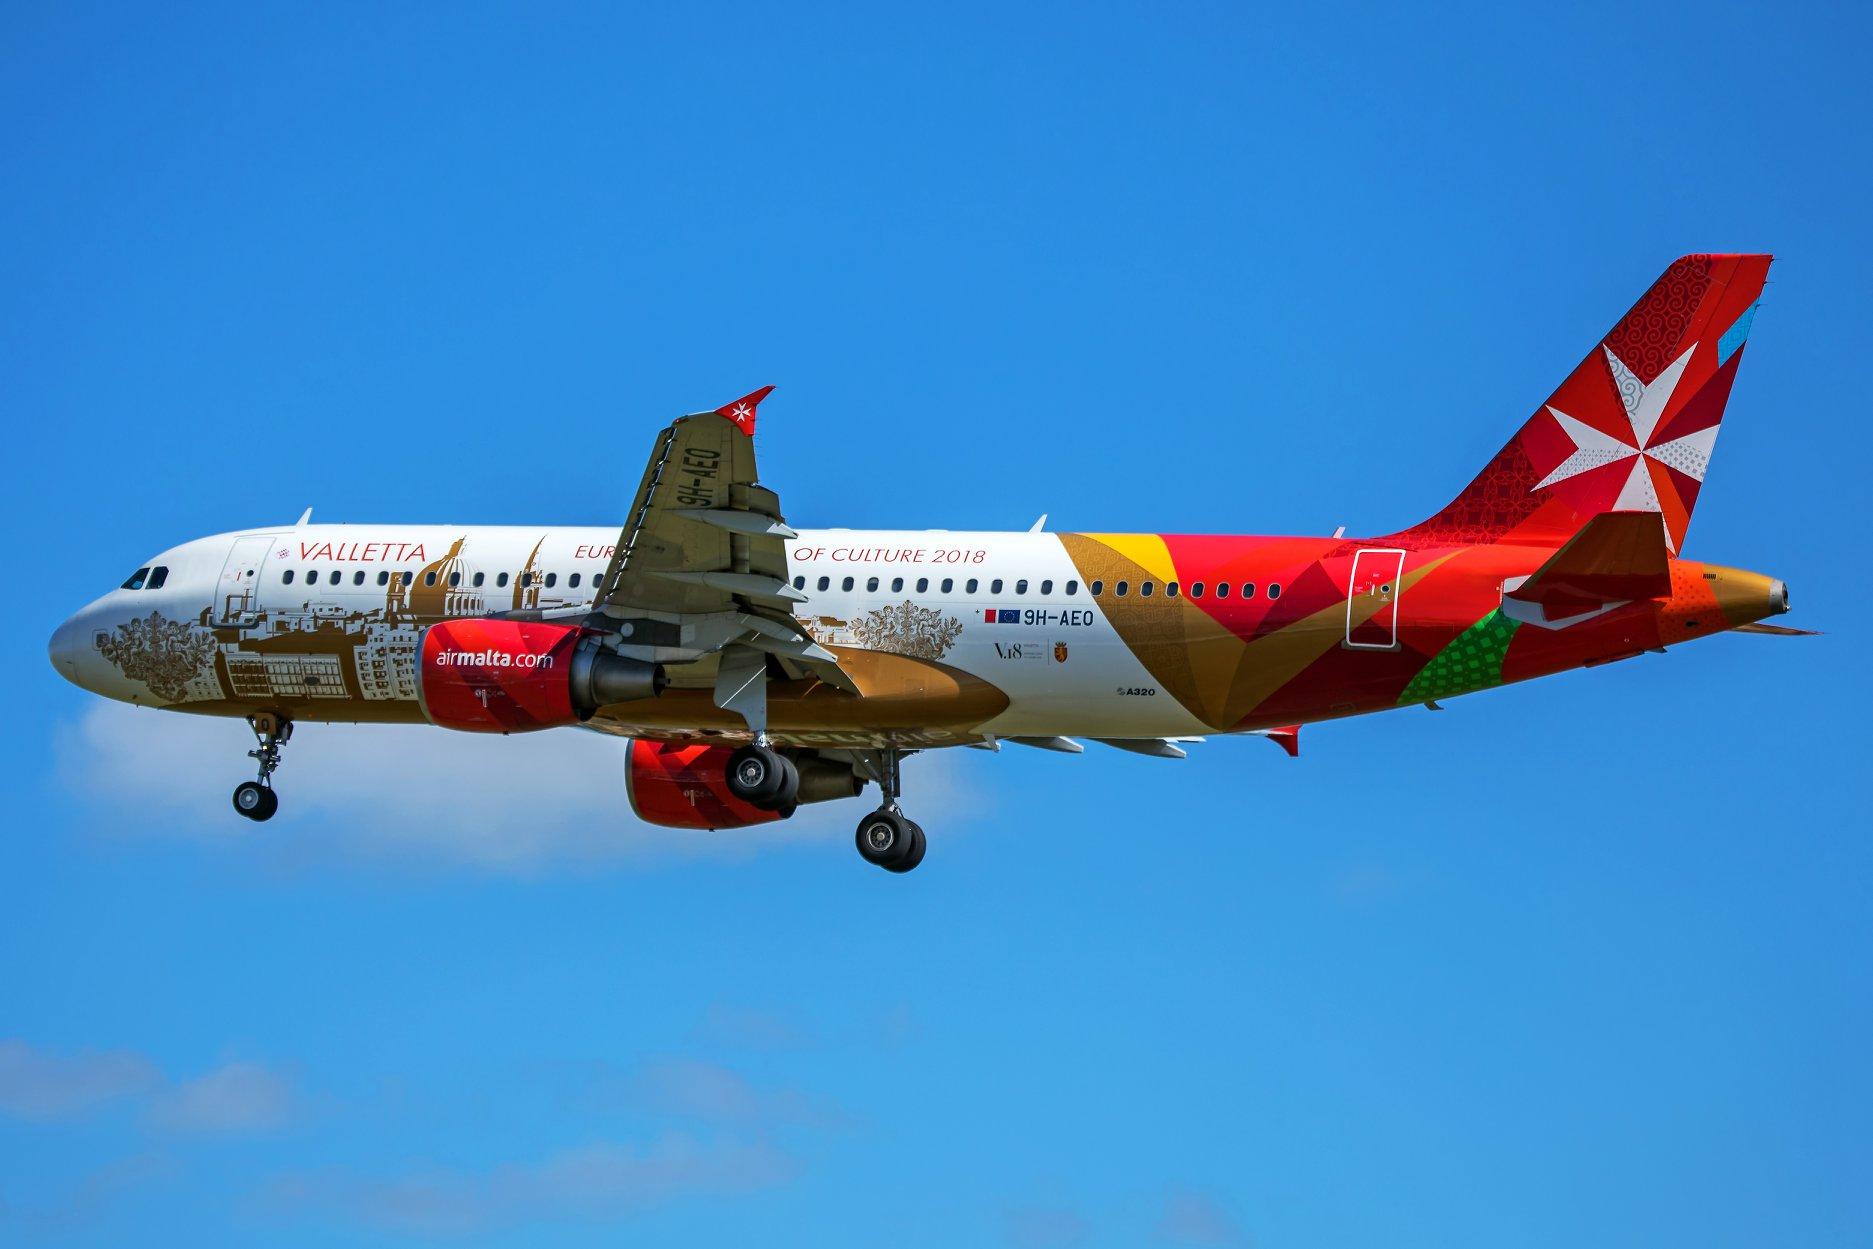 Air Malta to launch regular service to Romania's Bucharest - report